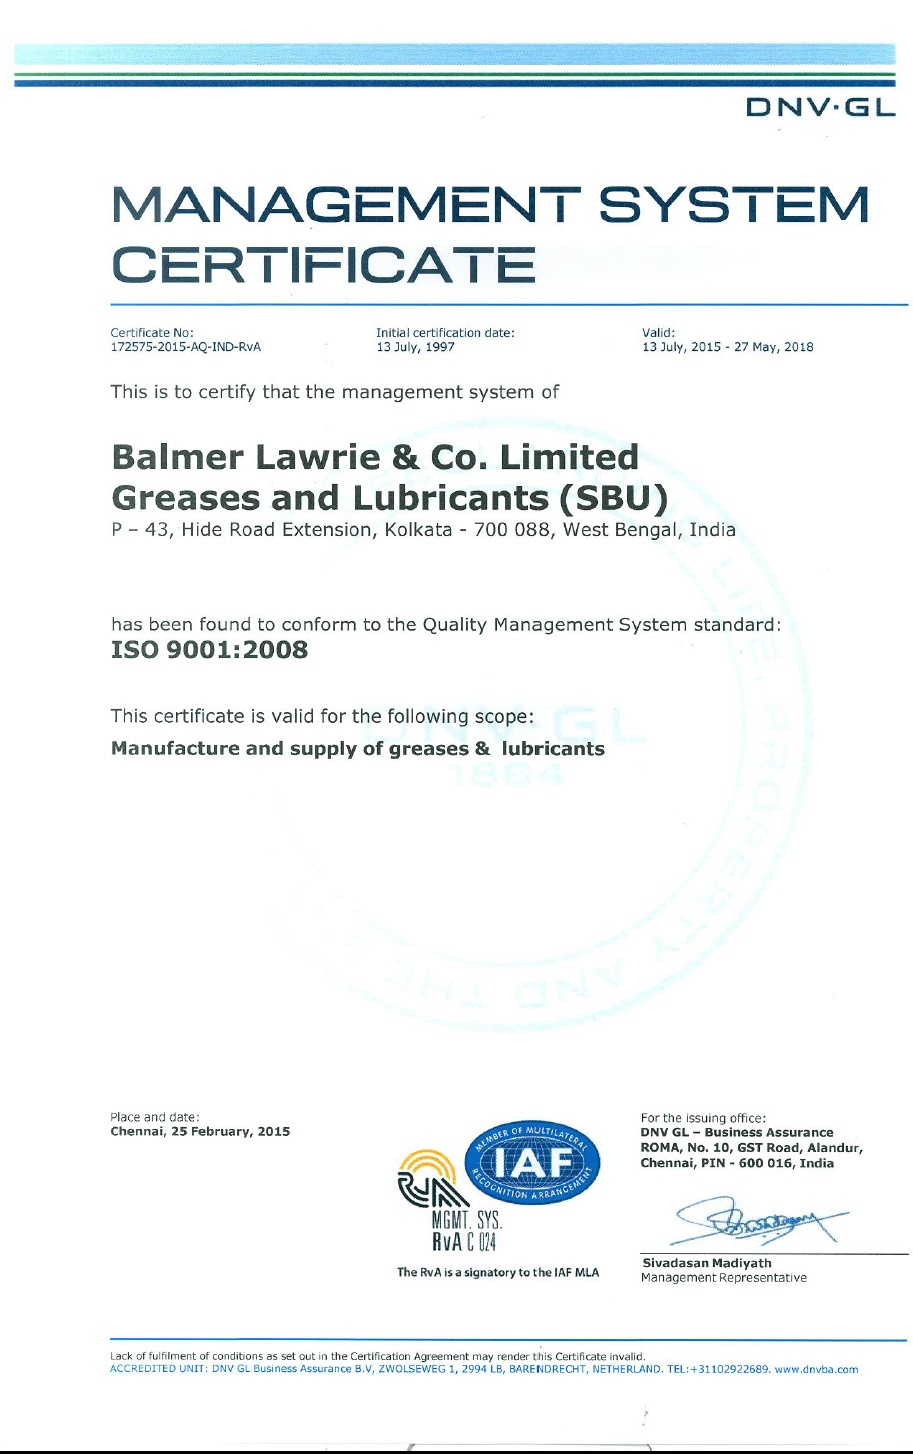 ISO certification 9001:2008